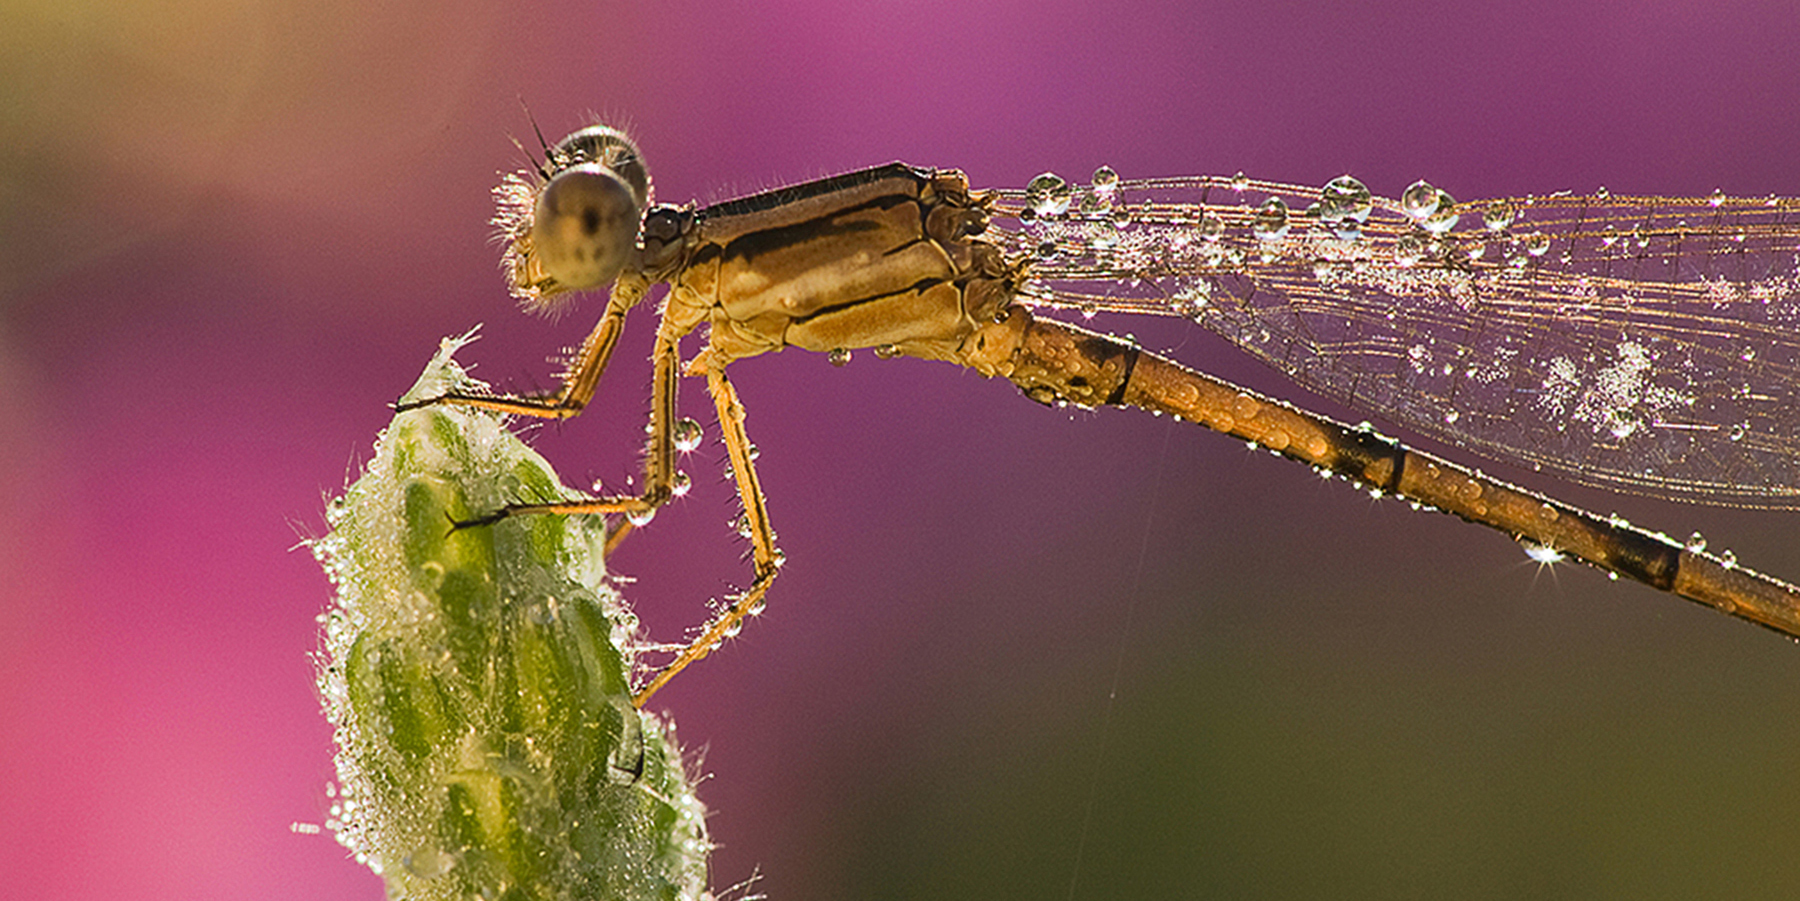 Dew-covered Damselfly